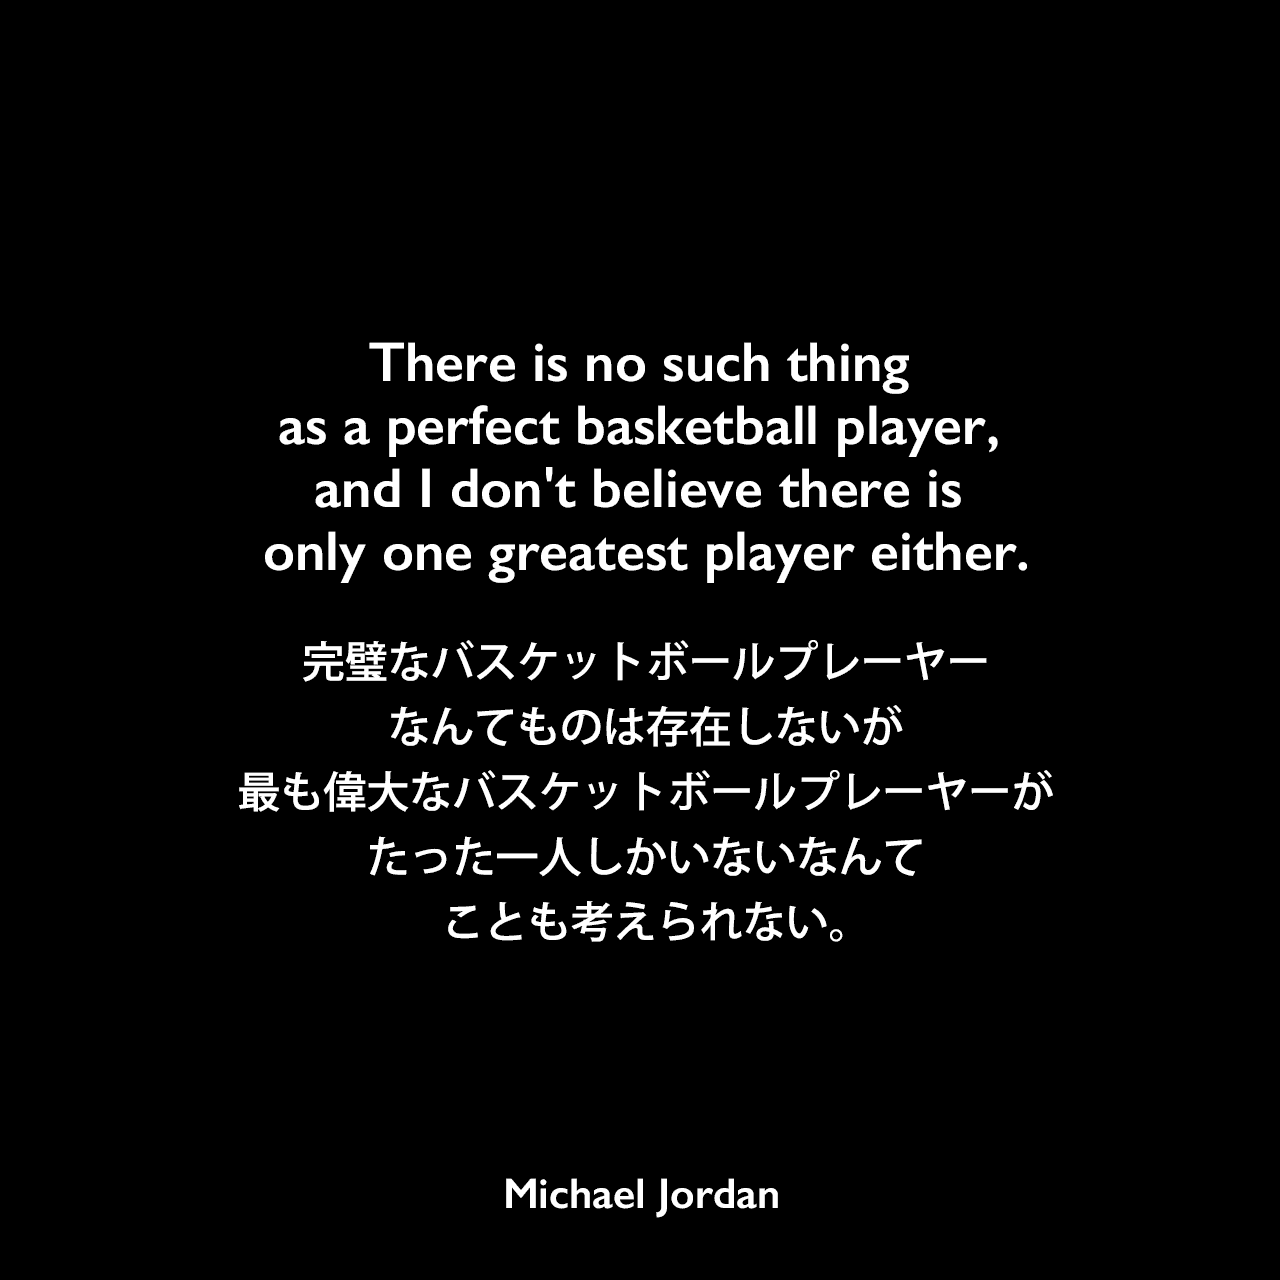 There is no such thing as a perfect basketball player, and I don't believe there is only one greatest player either.完璧なバスケットボールプレーヤーなんてものは存在しないが、最も偉大なバスケットボールプレーヤーがたった一人しかいないなんてことも考えられない。Michael Jordan